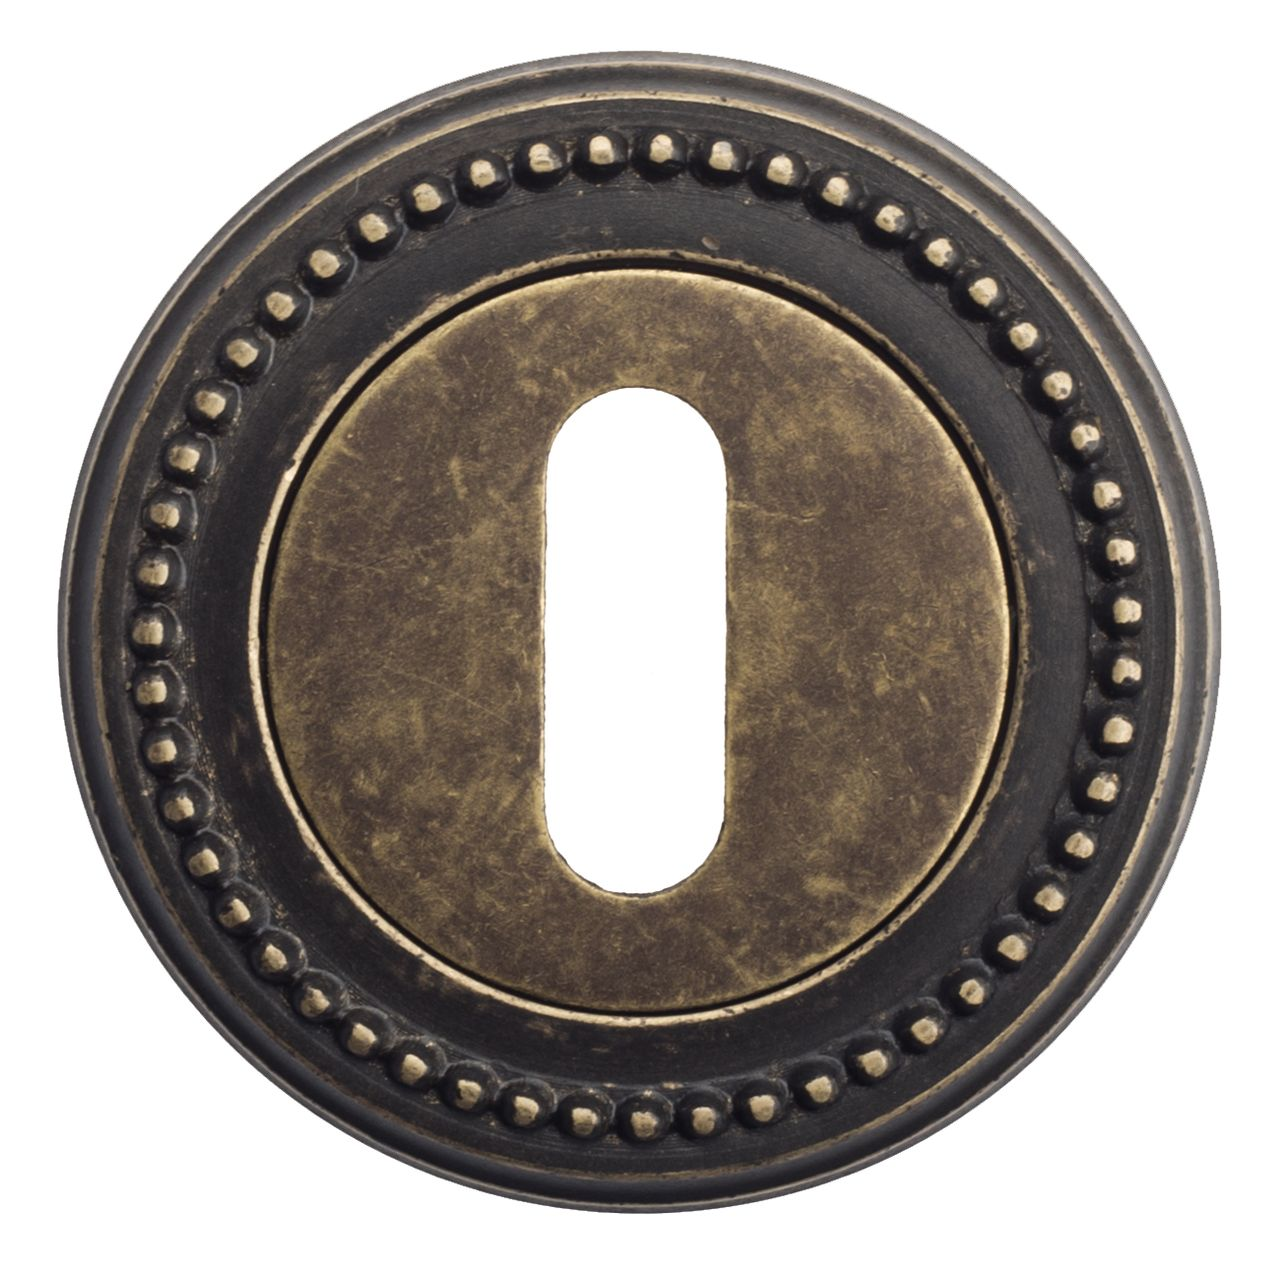 Keyhole Escutcheon Venezia KEY-1 D3 Antique Bronze